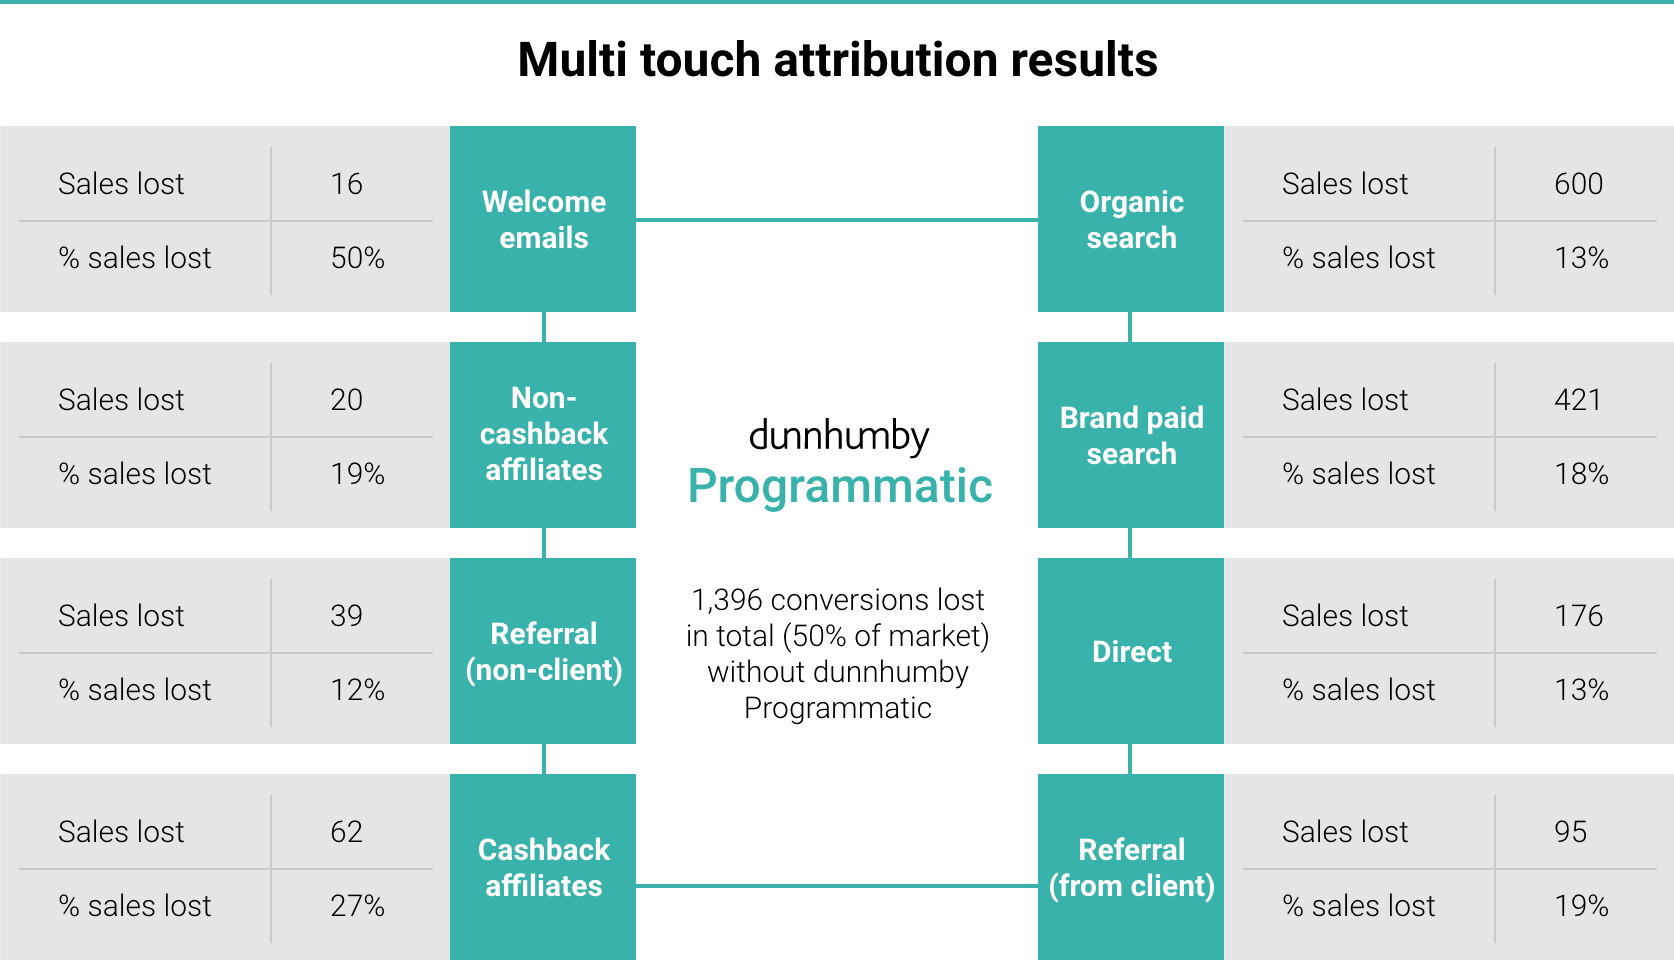 Multi touch attribution results - dunnhumby Programmatic